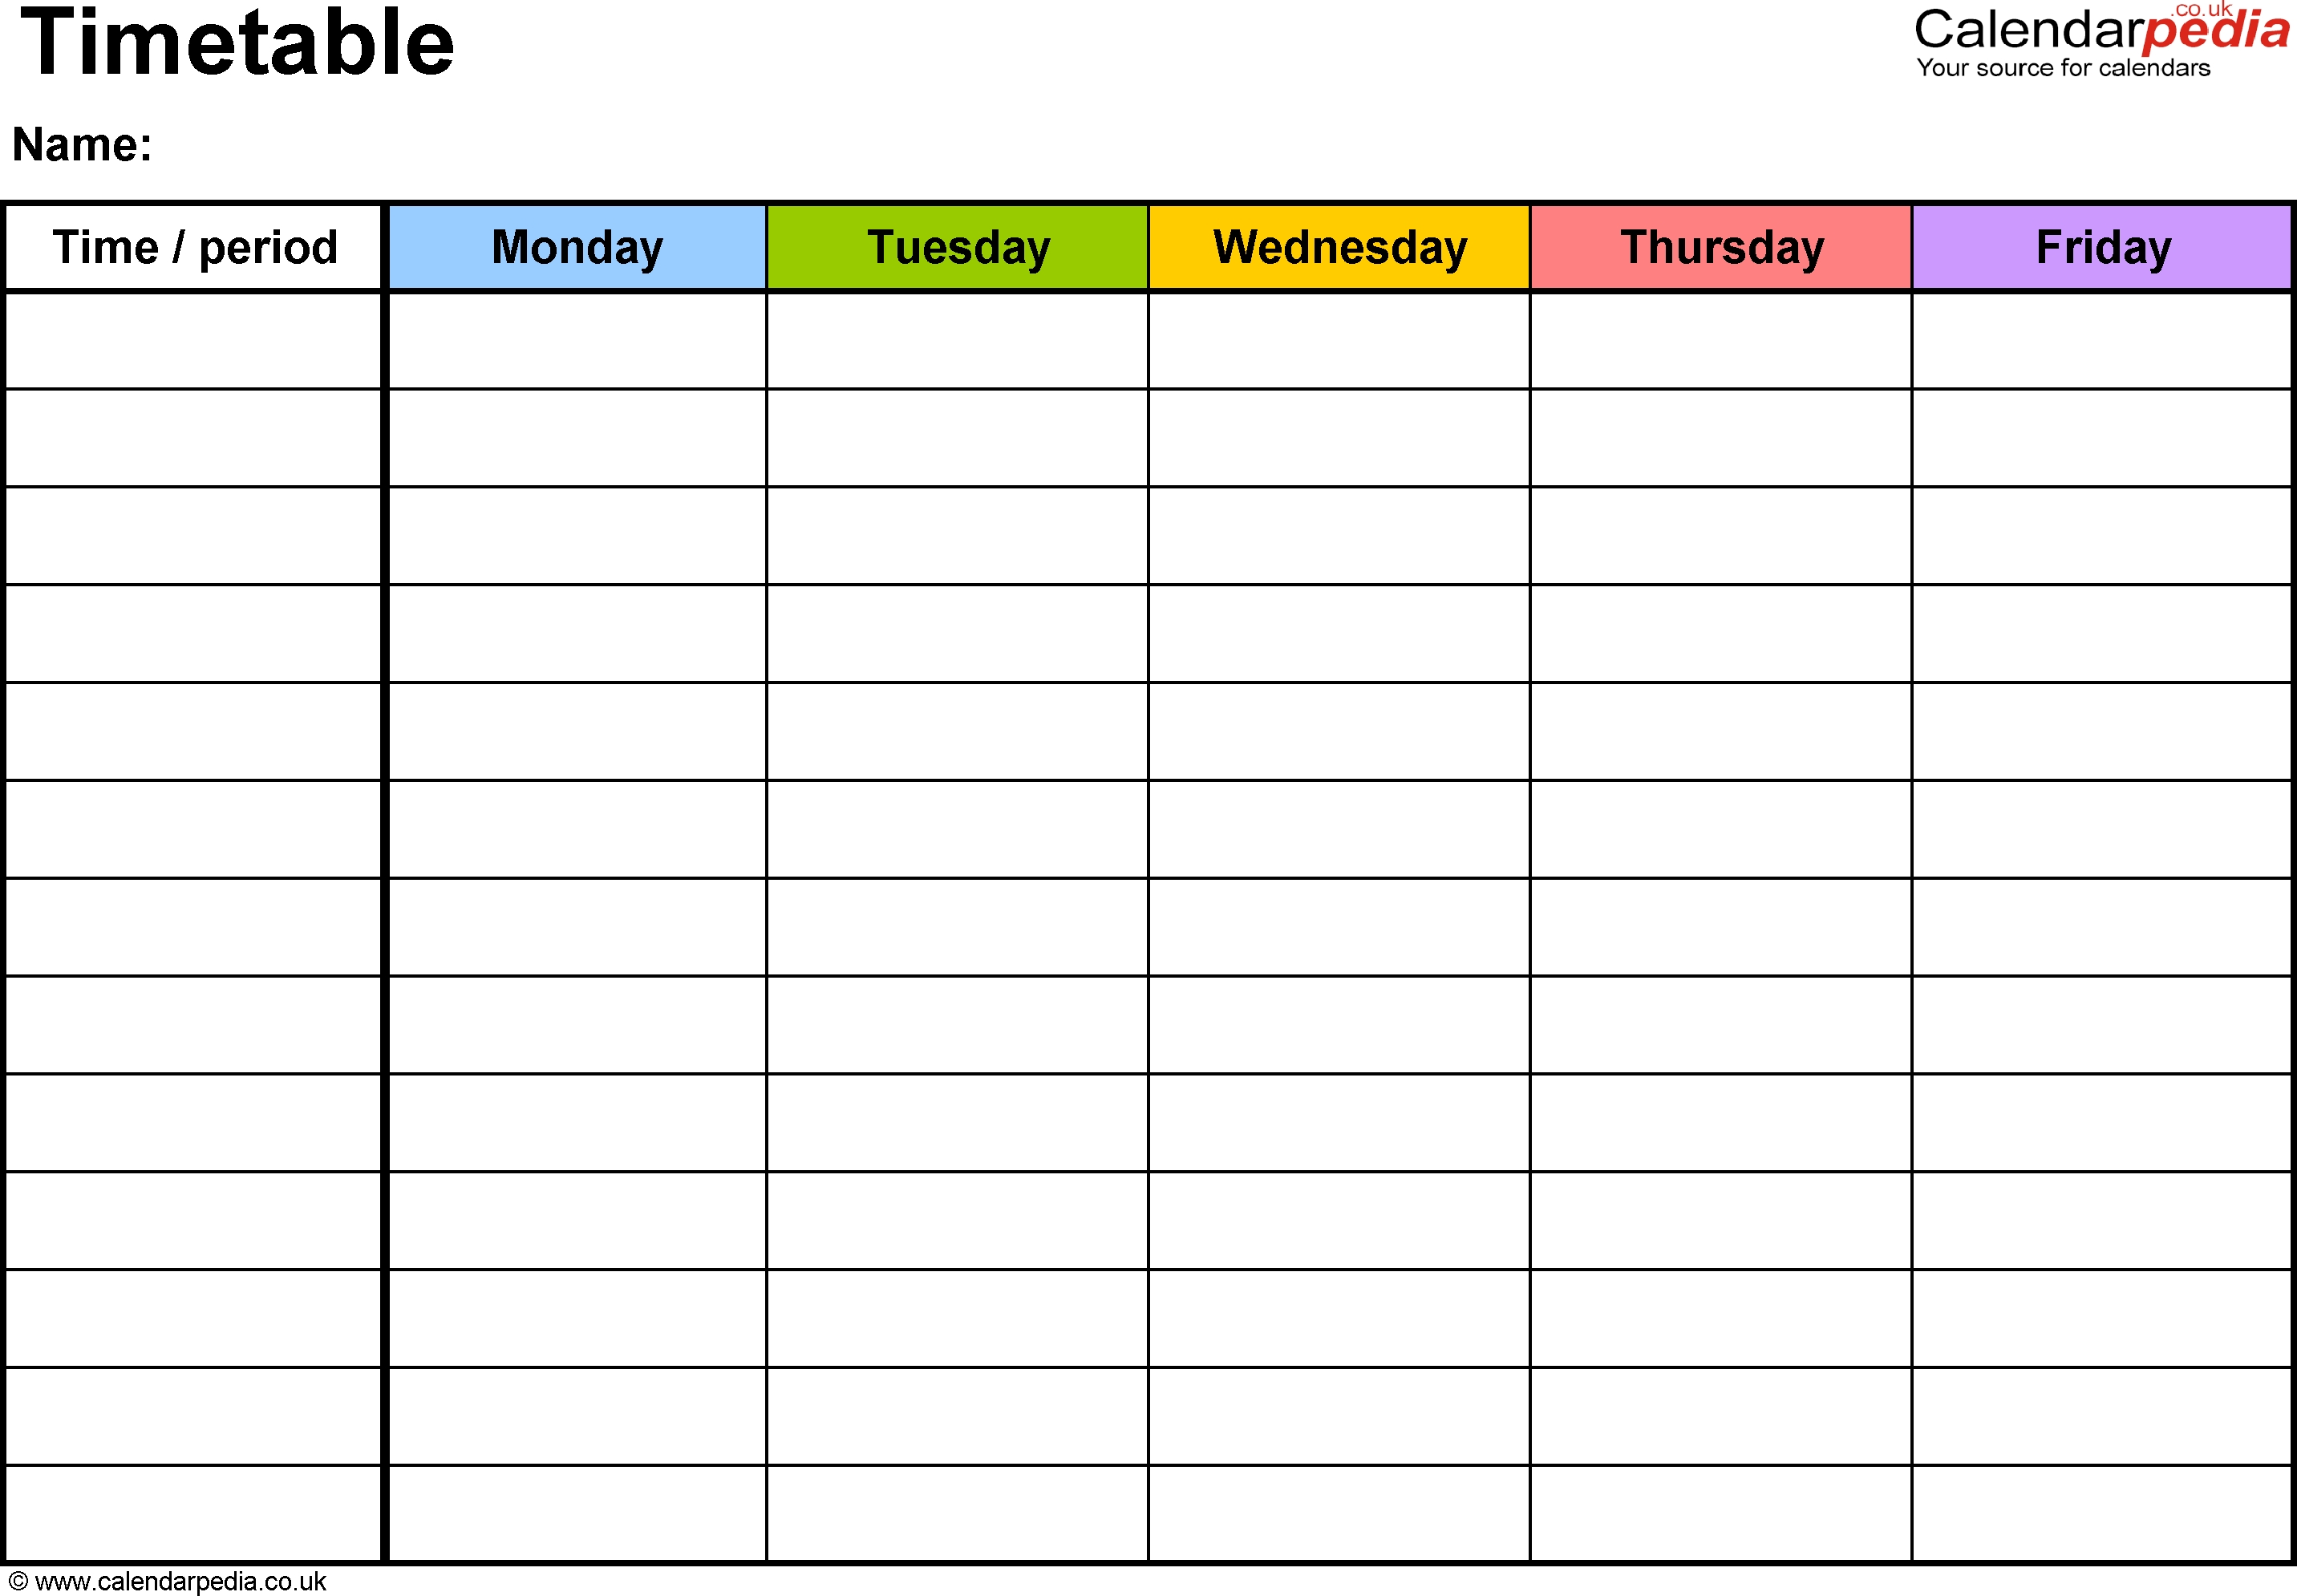 Pdf Timetable Template 2: Landscape Format, A4, 1 Page intended for Pdf Free Monday - Friday Weekly Planner